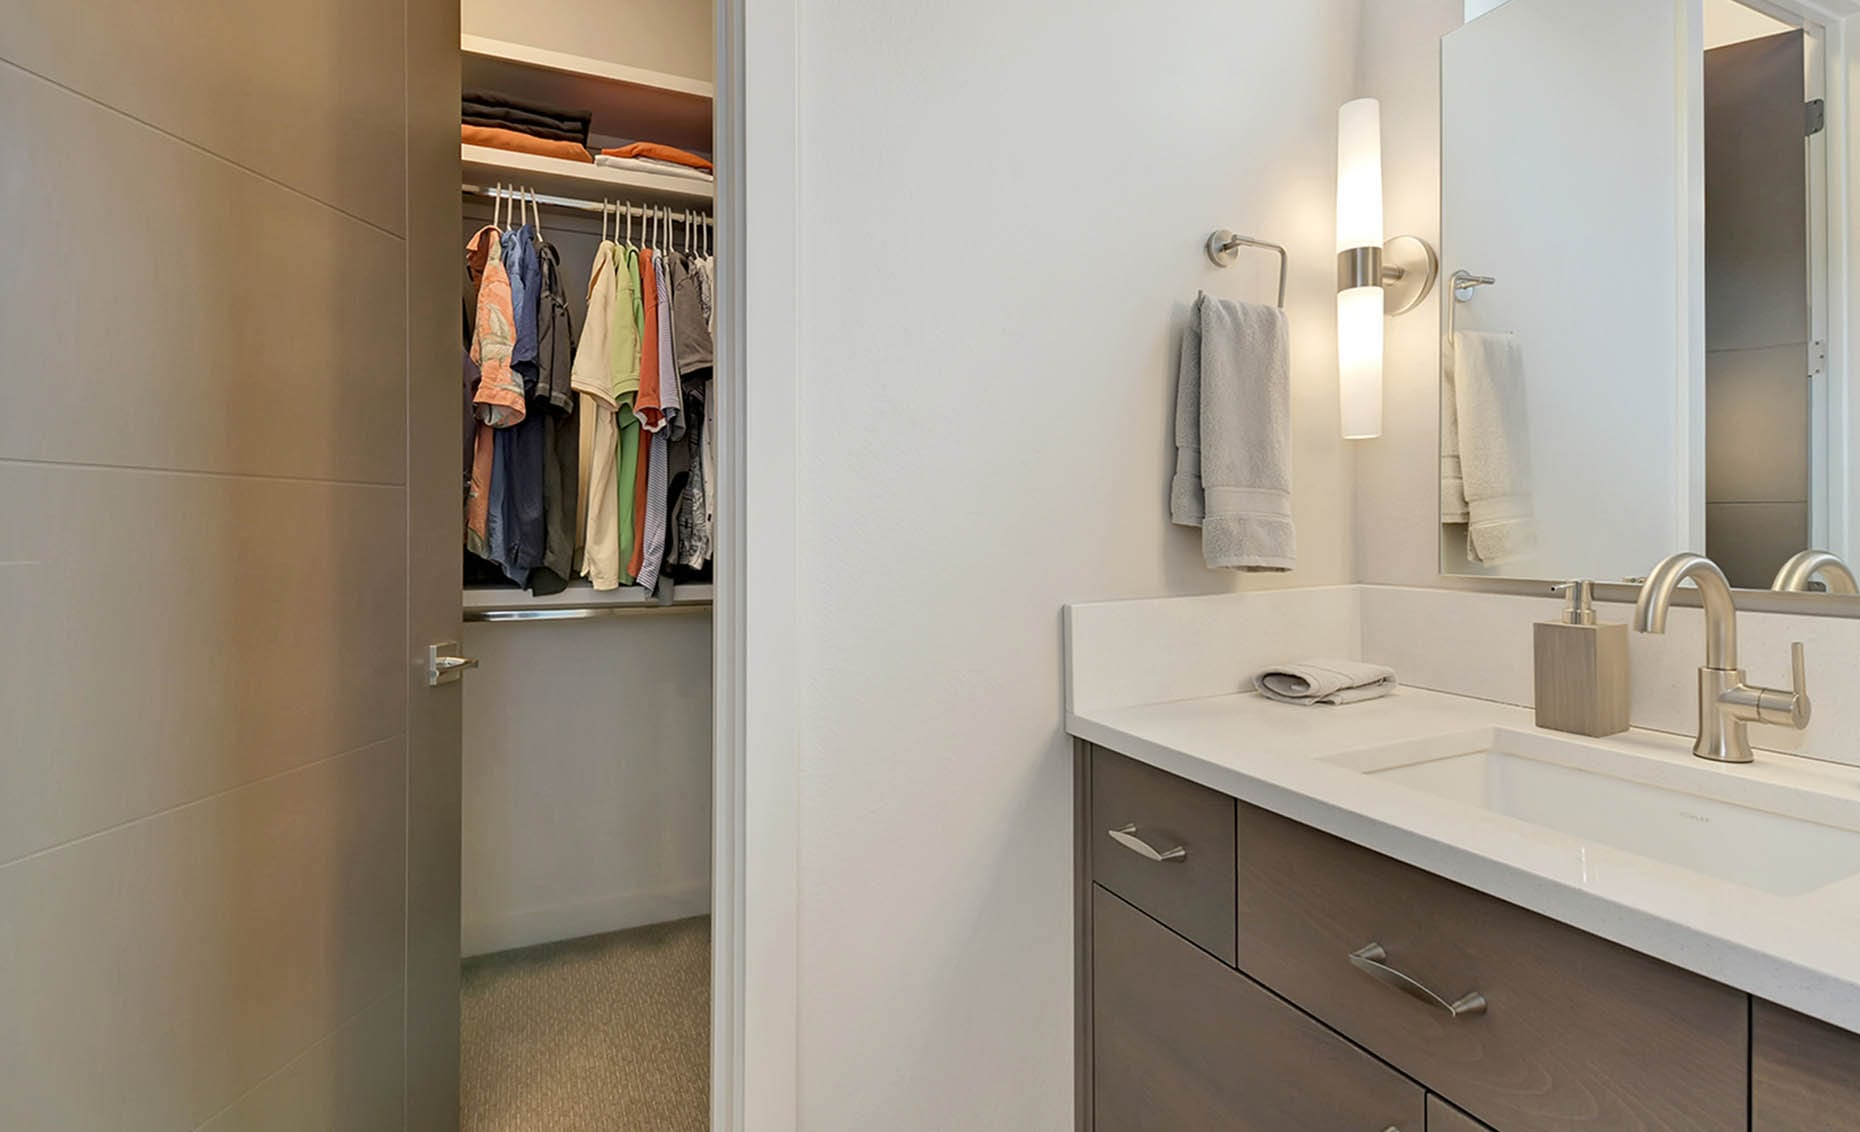 The Nature View Custom Home Bathroom and walk-in closet